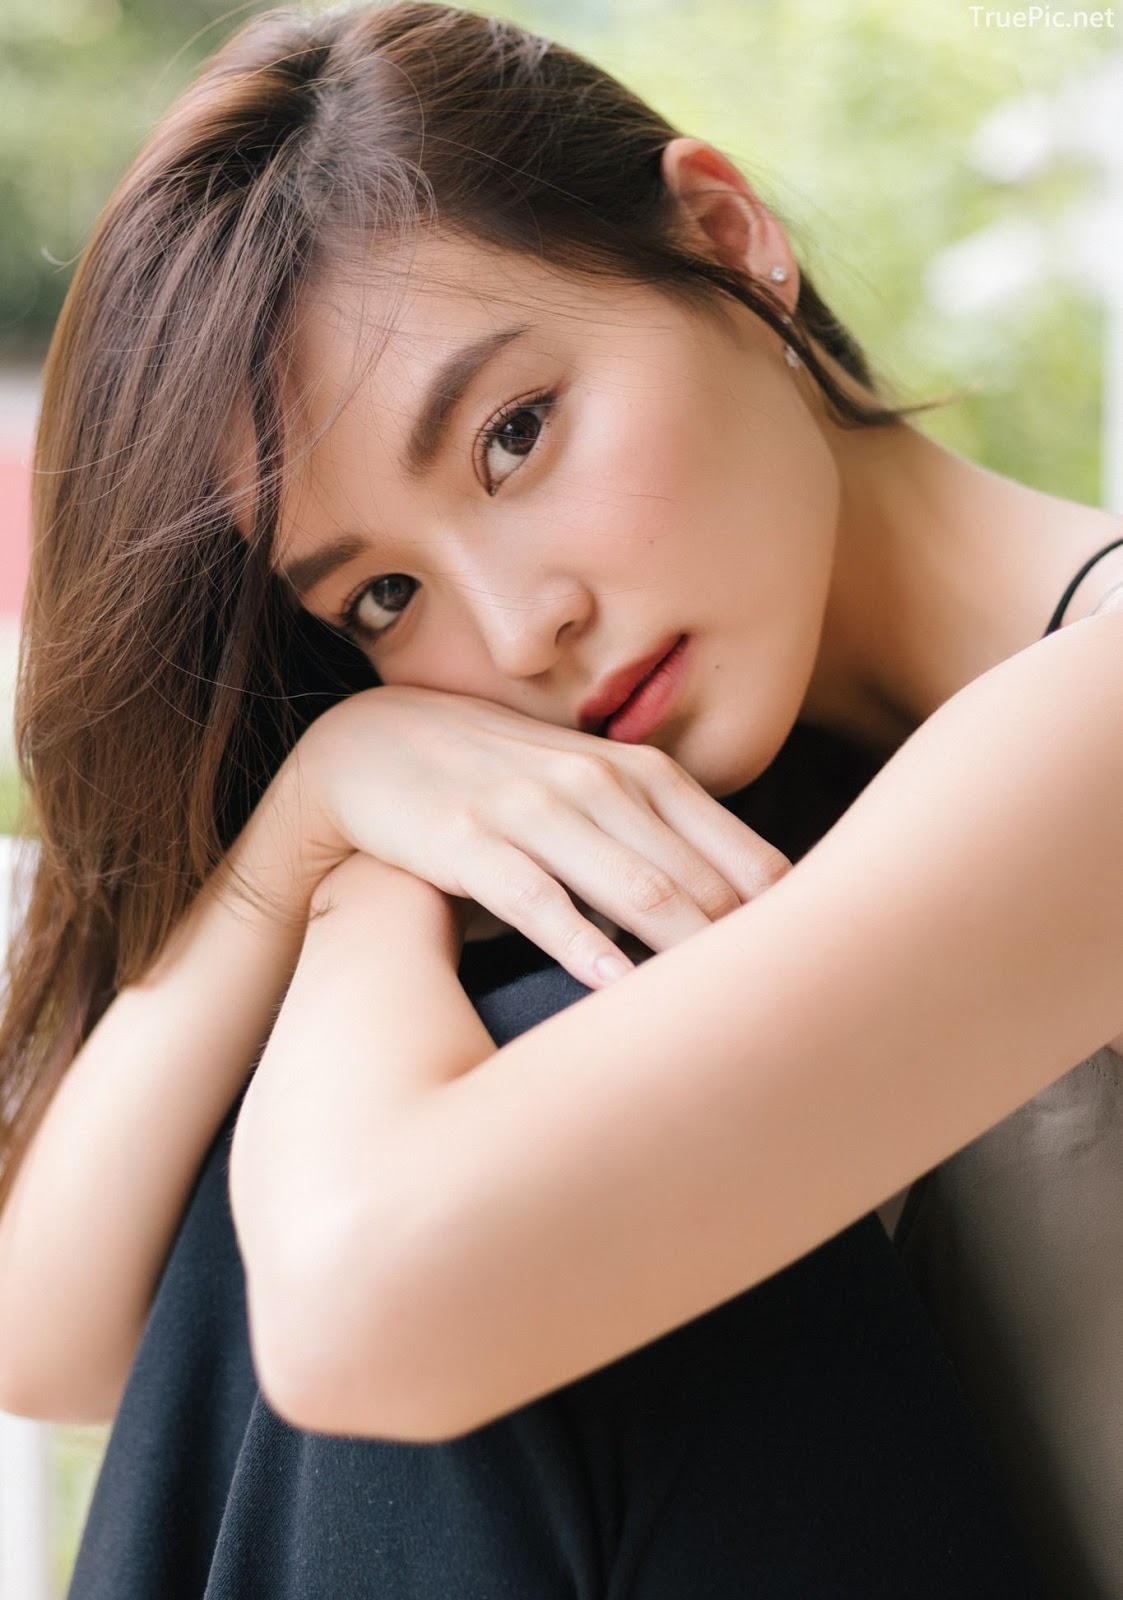 Beauty Thailand Kapook Phatchara so attractive with photo album Bloom with grace - Picture 8